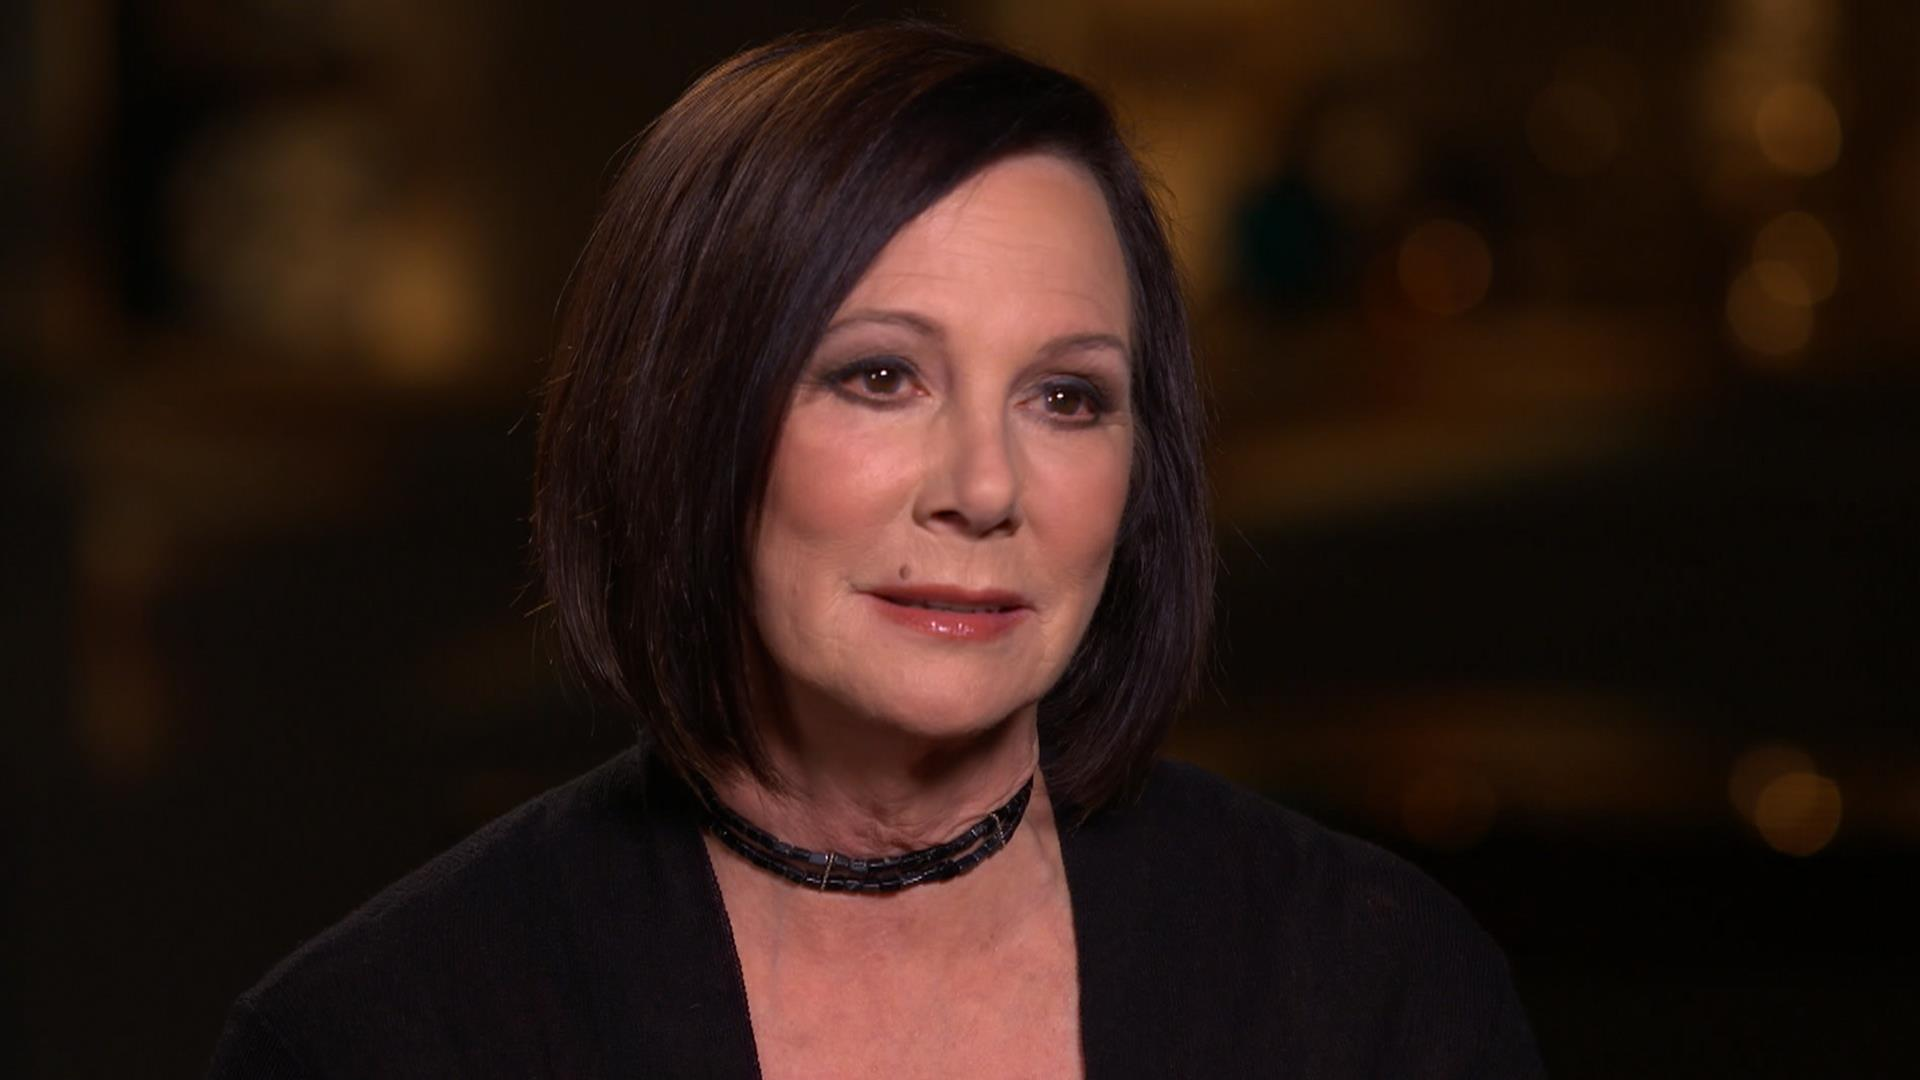 Former OJ Prosecutor Marcia Clark Speaks Out